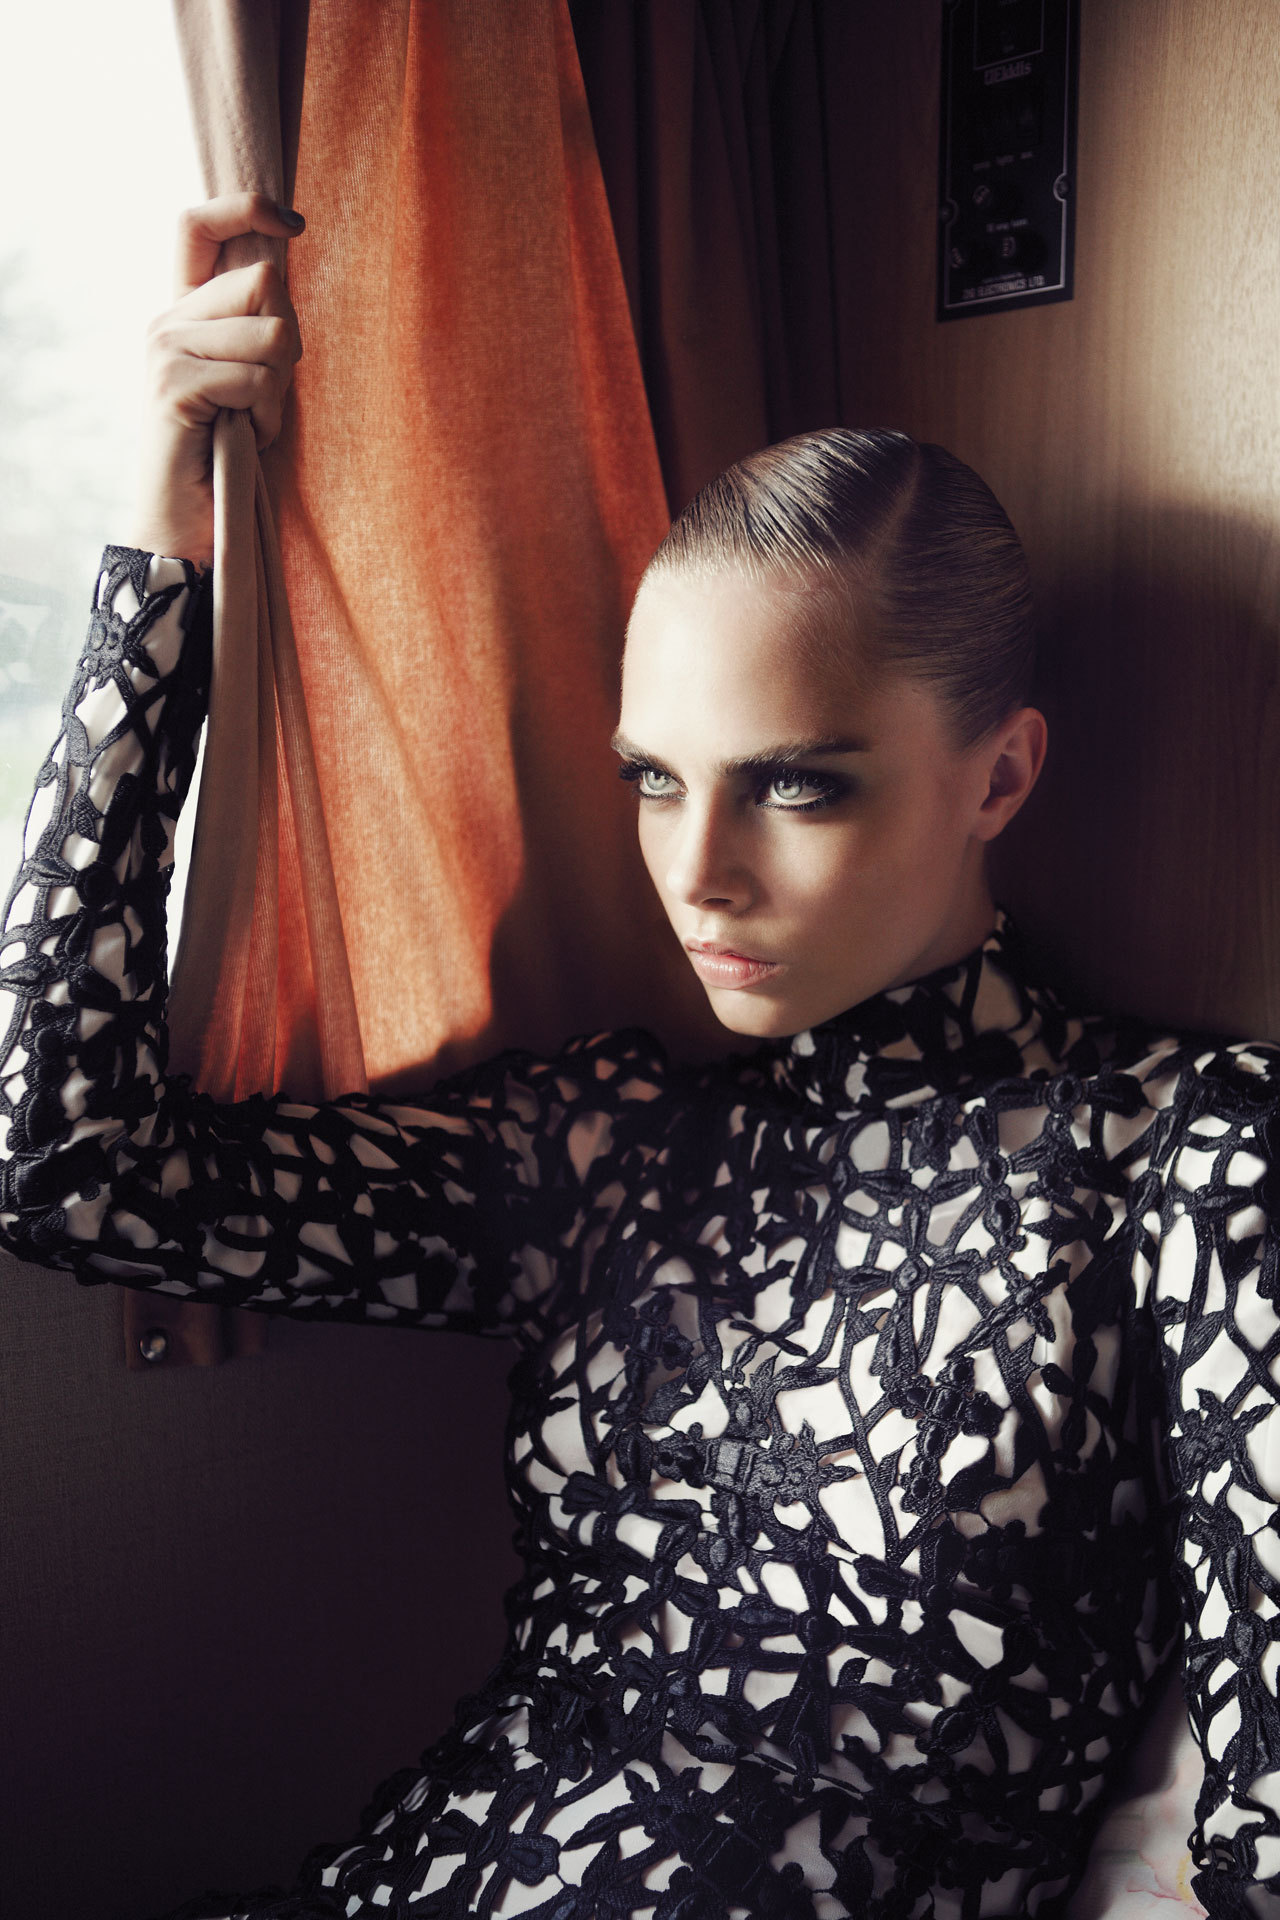 Cara Delevingne photographed by Glen Luchford for Vogue UK, November 2012